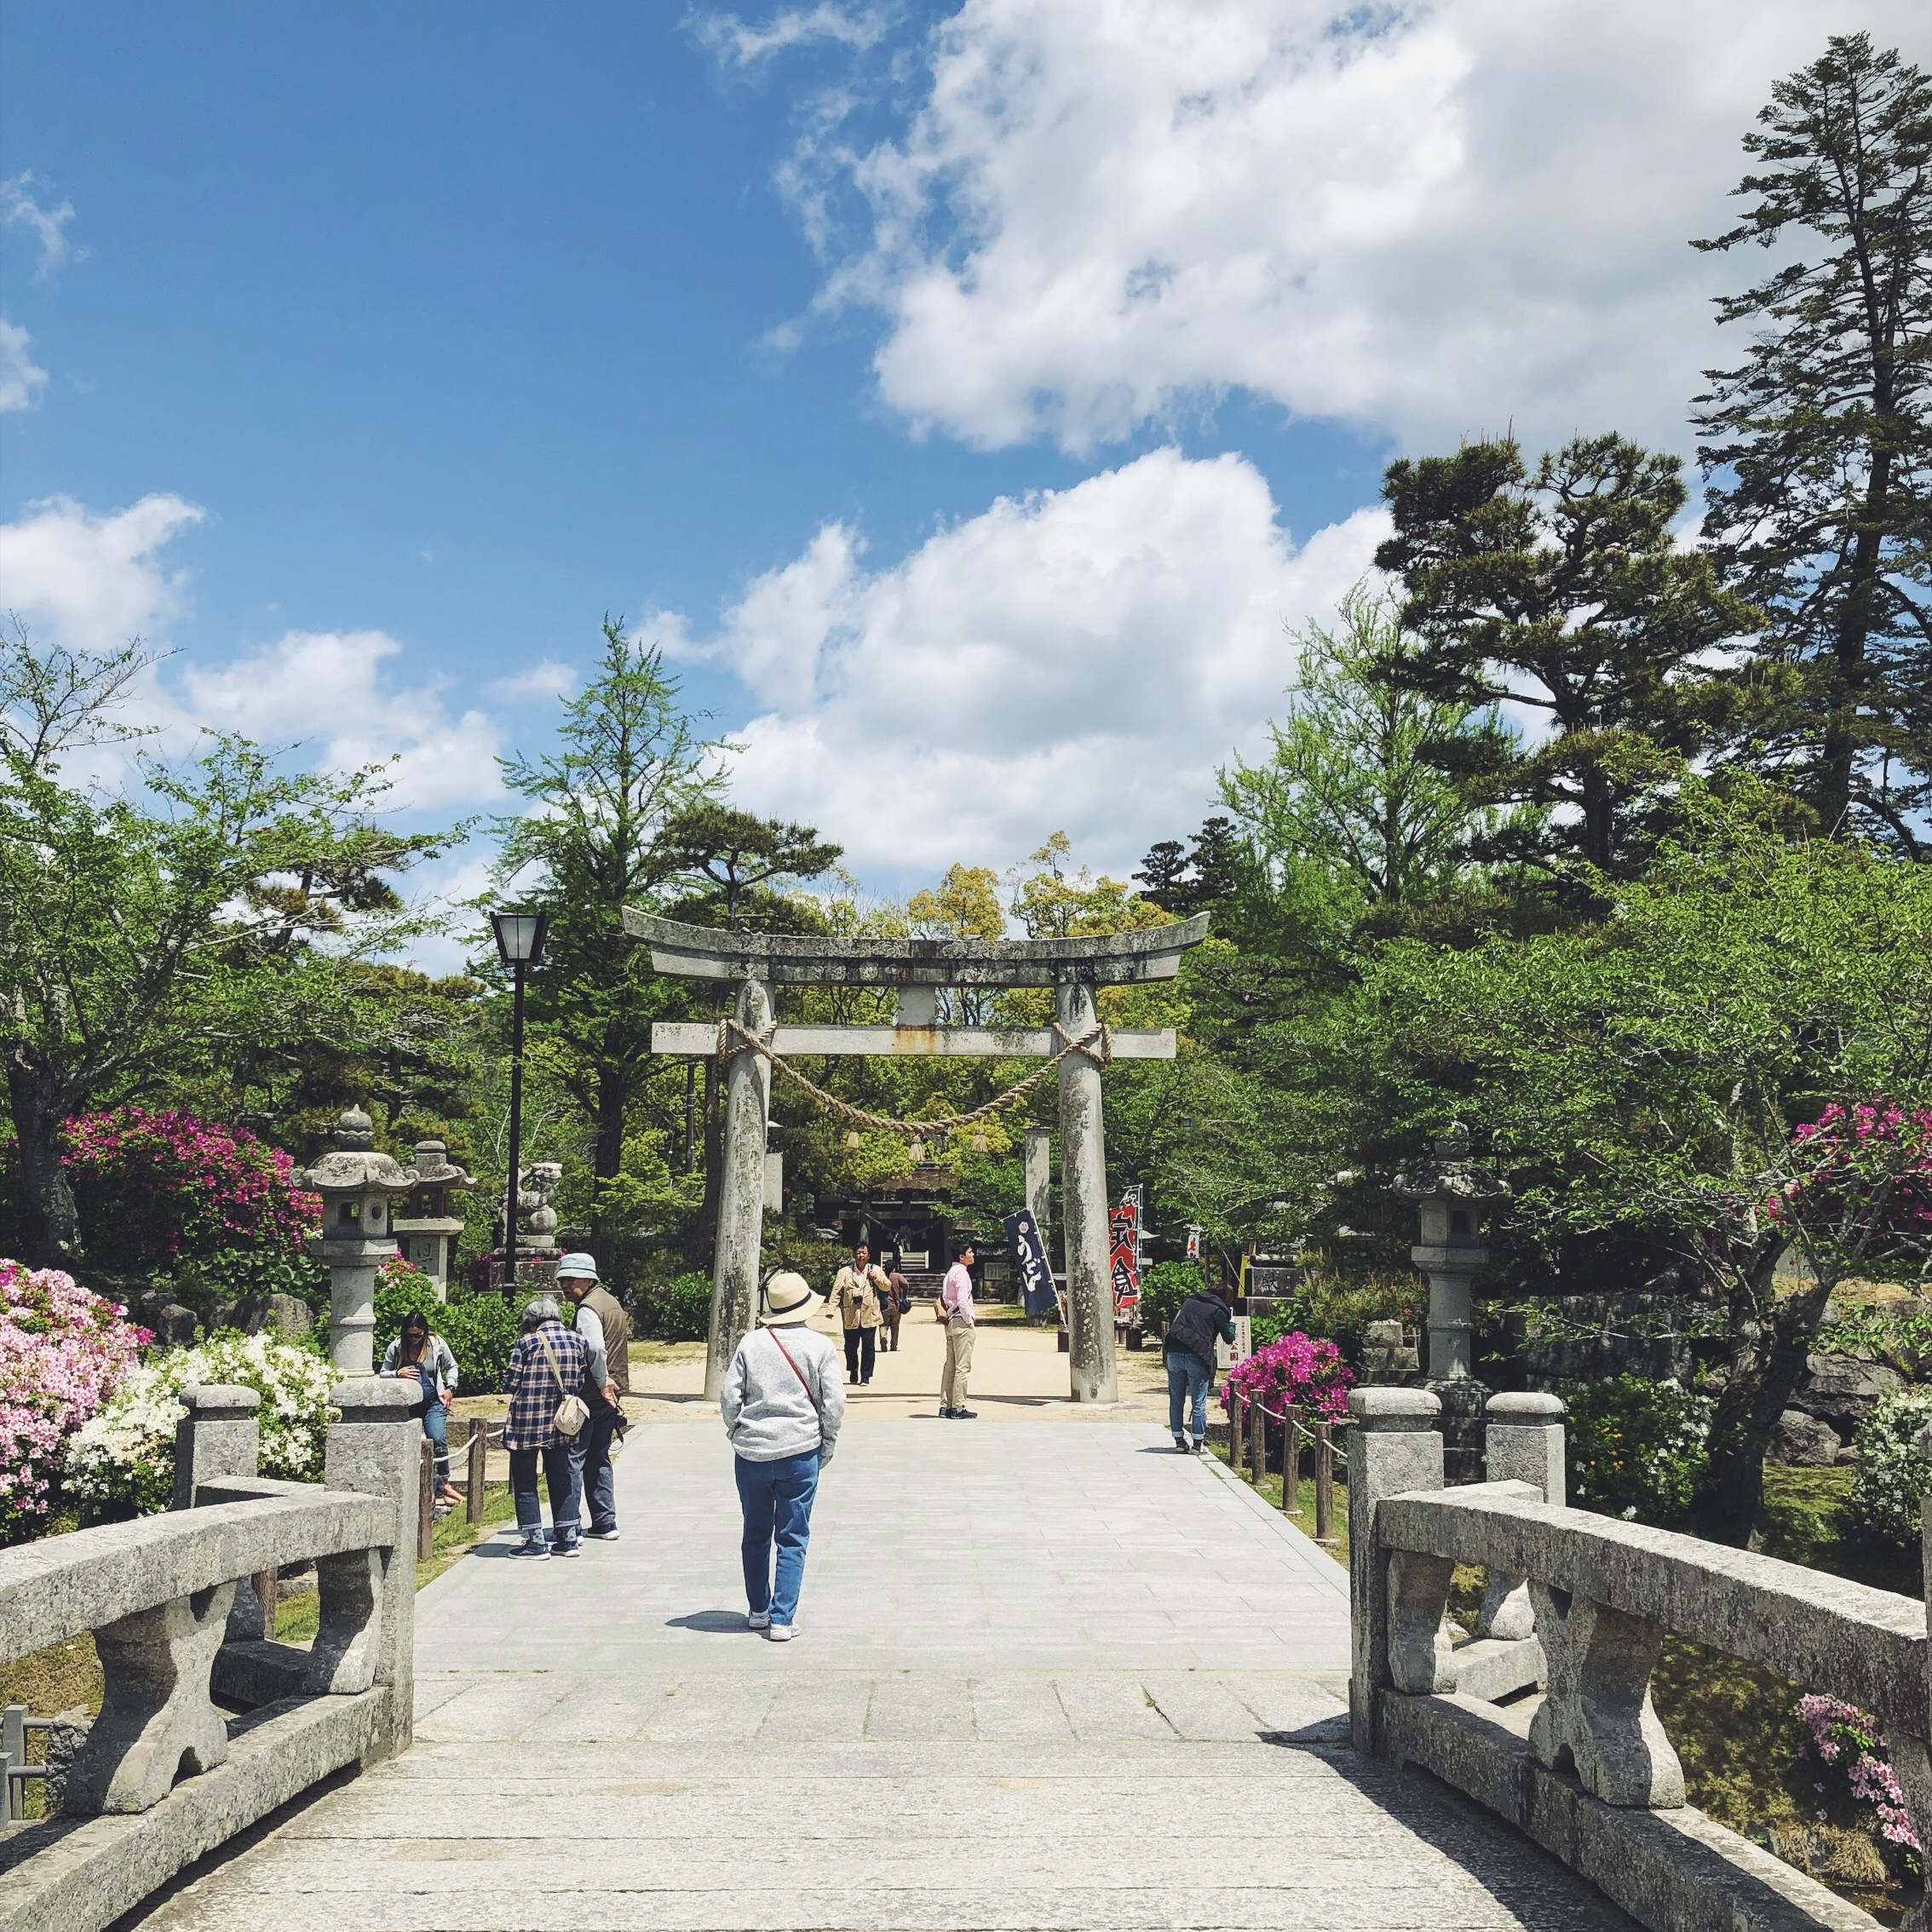 ENTERING THE GARDENS AT KINTAI BRIDGE